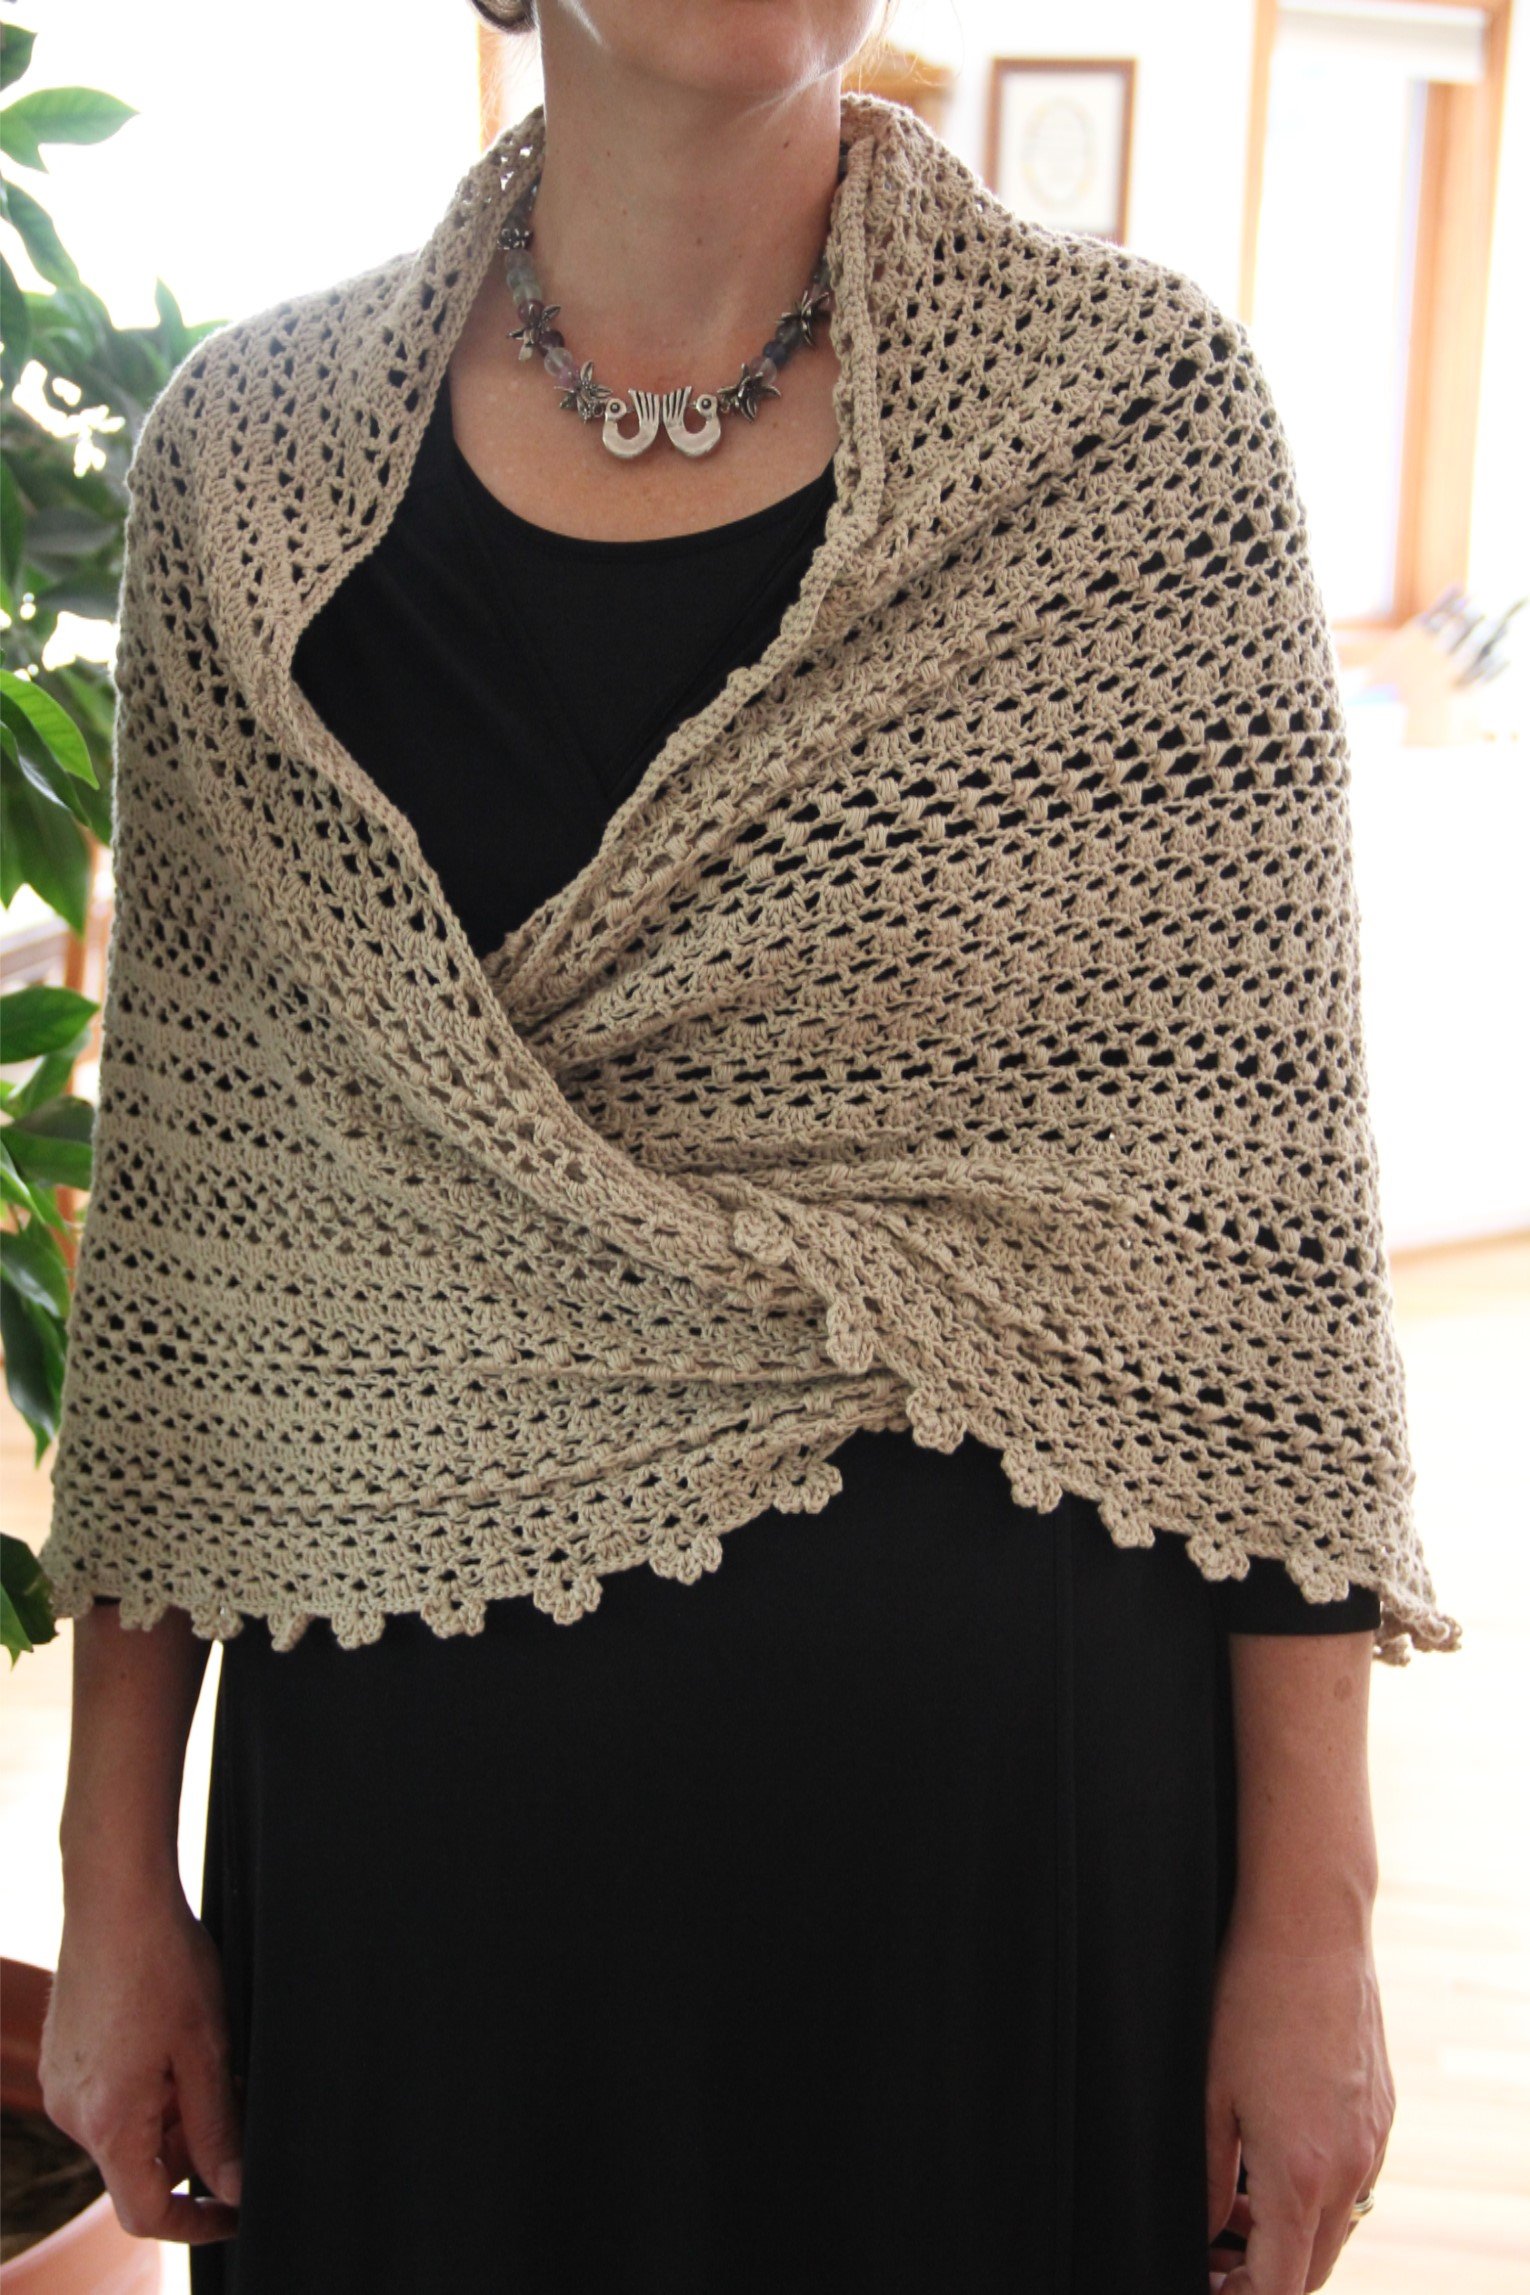 Free Easy Crochet Patterns For Prayer Shawls : Shawl Related Keywords & Suggestions - Shawl Long Tail ...